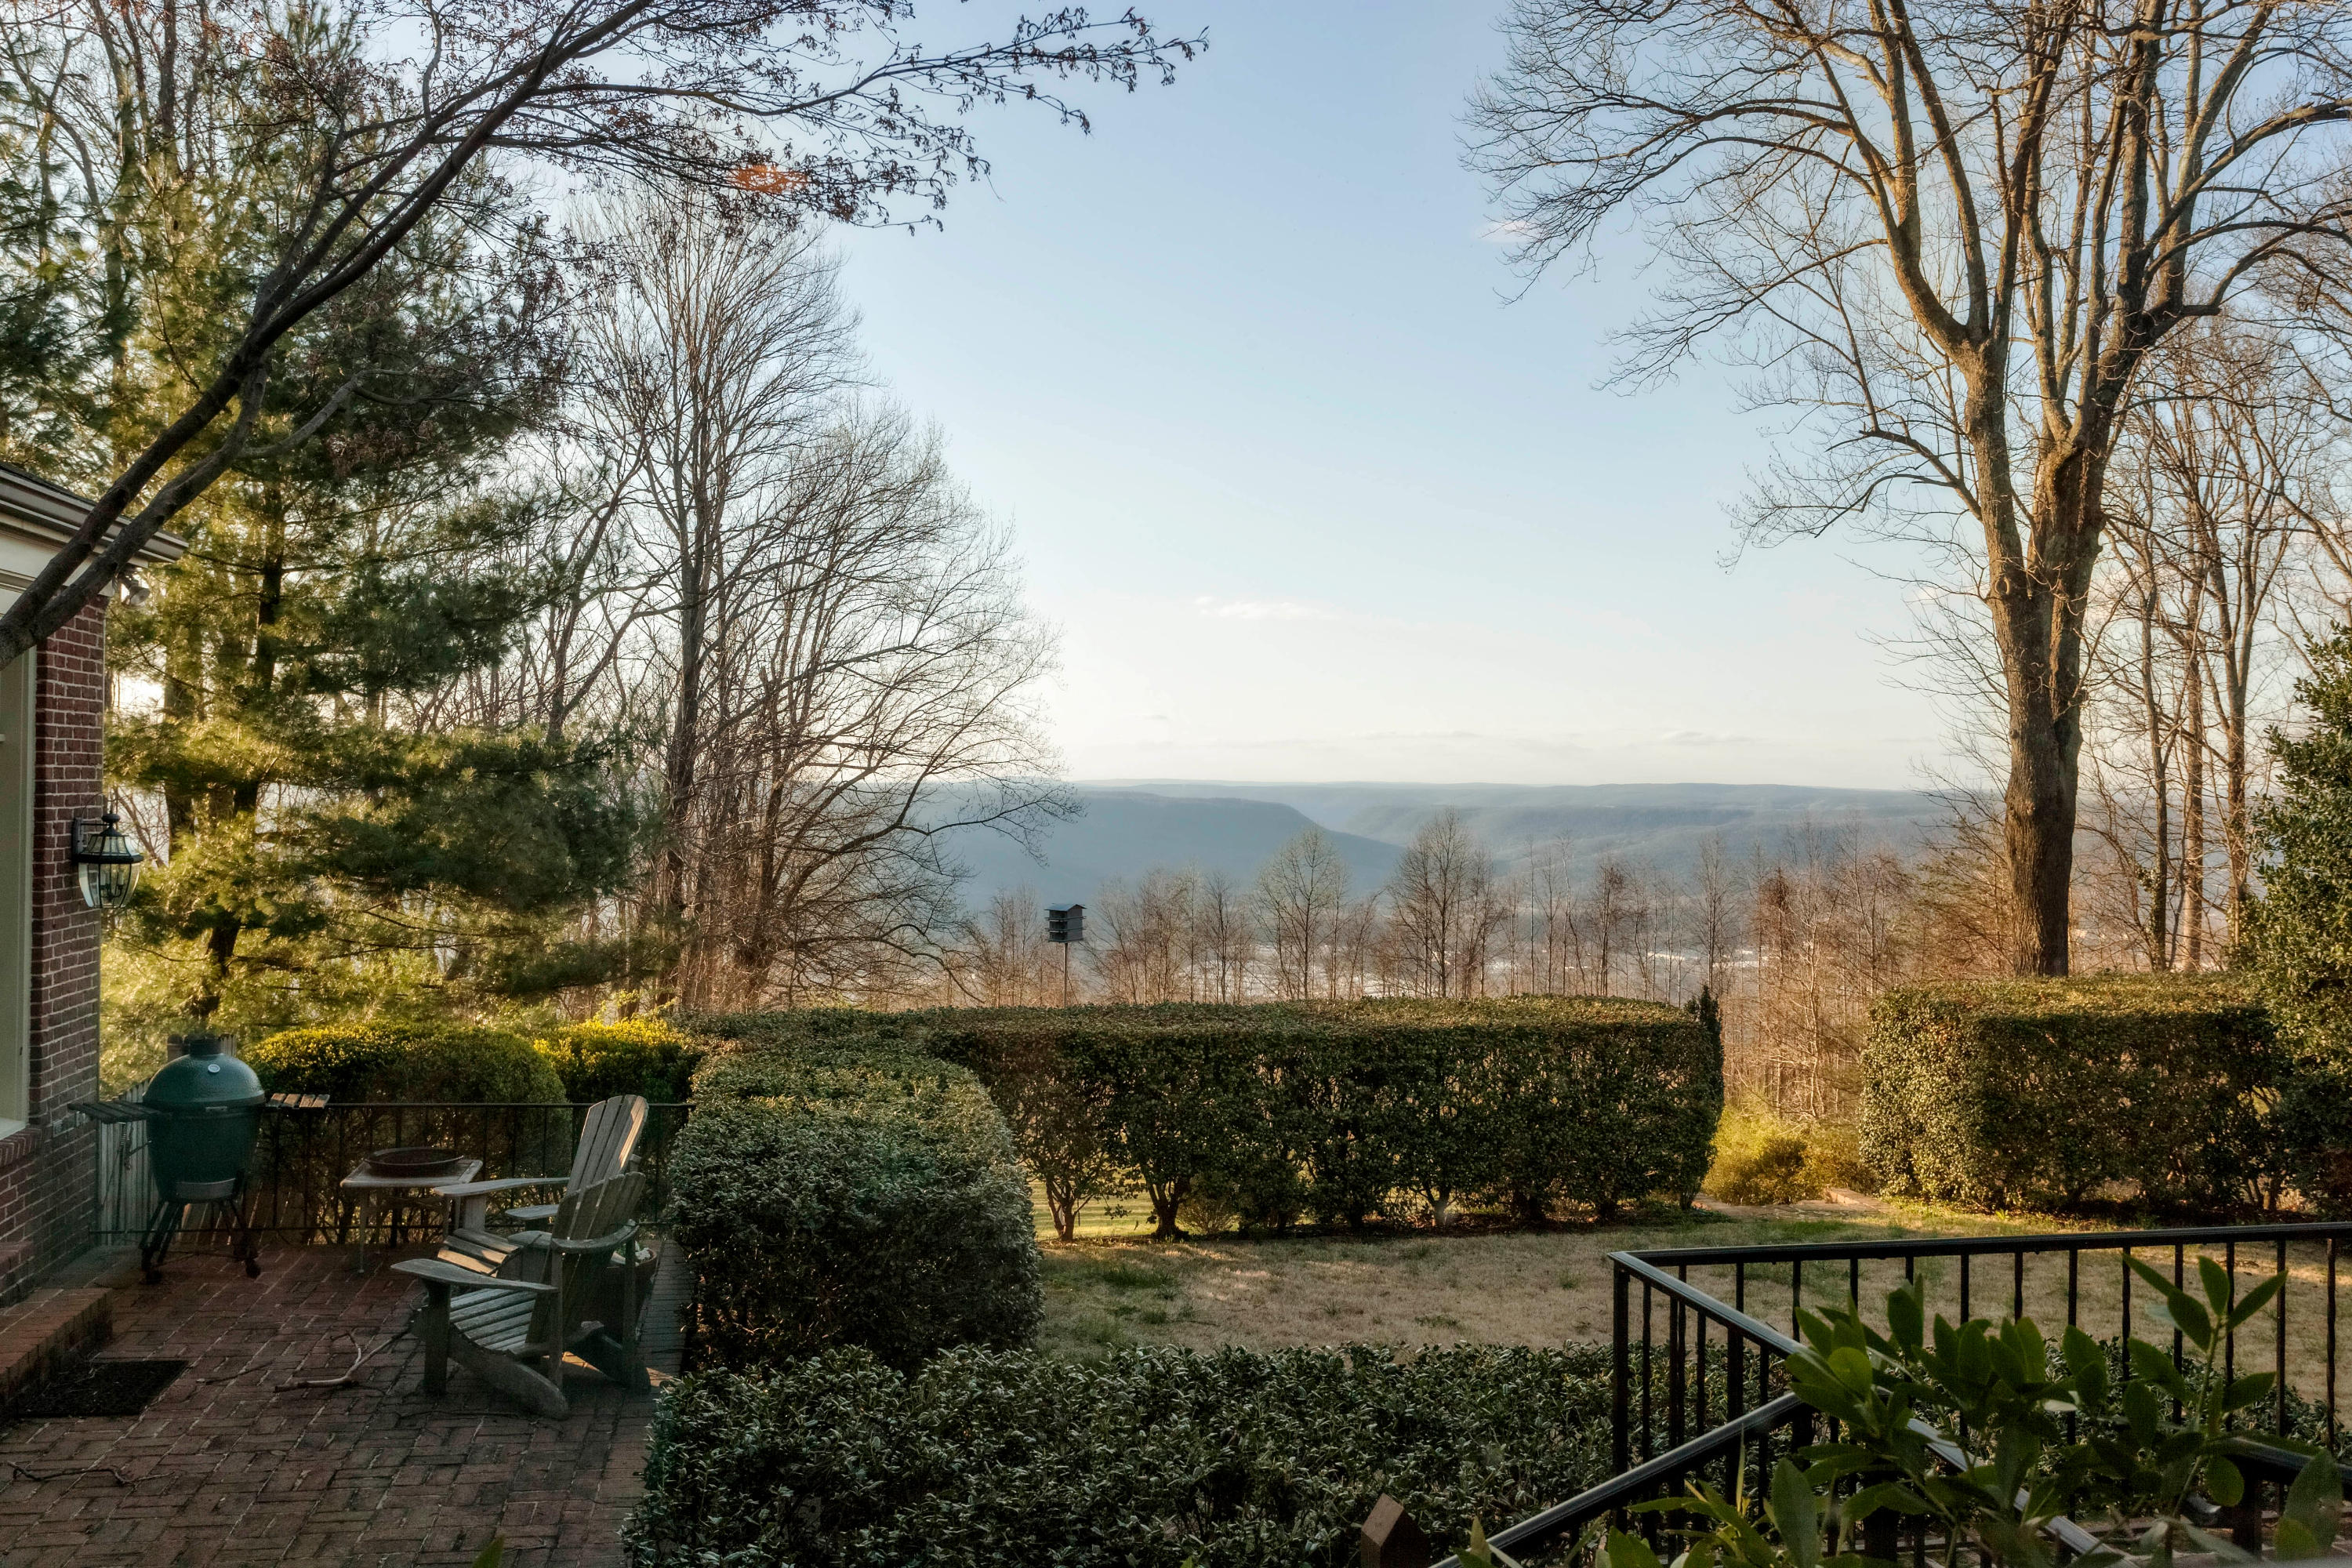 14689 Scenic Hwy, Lookout Mountain, GA 30750